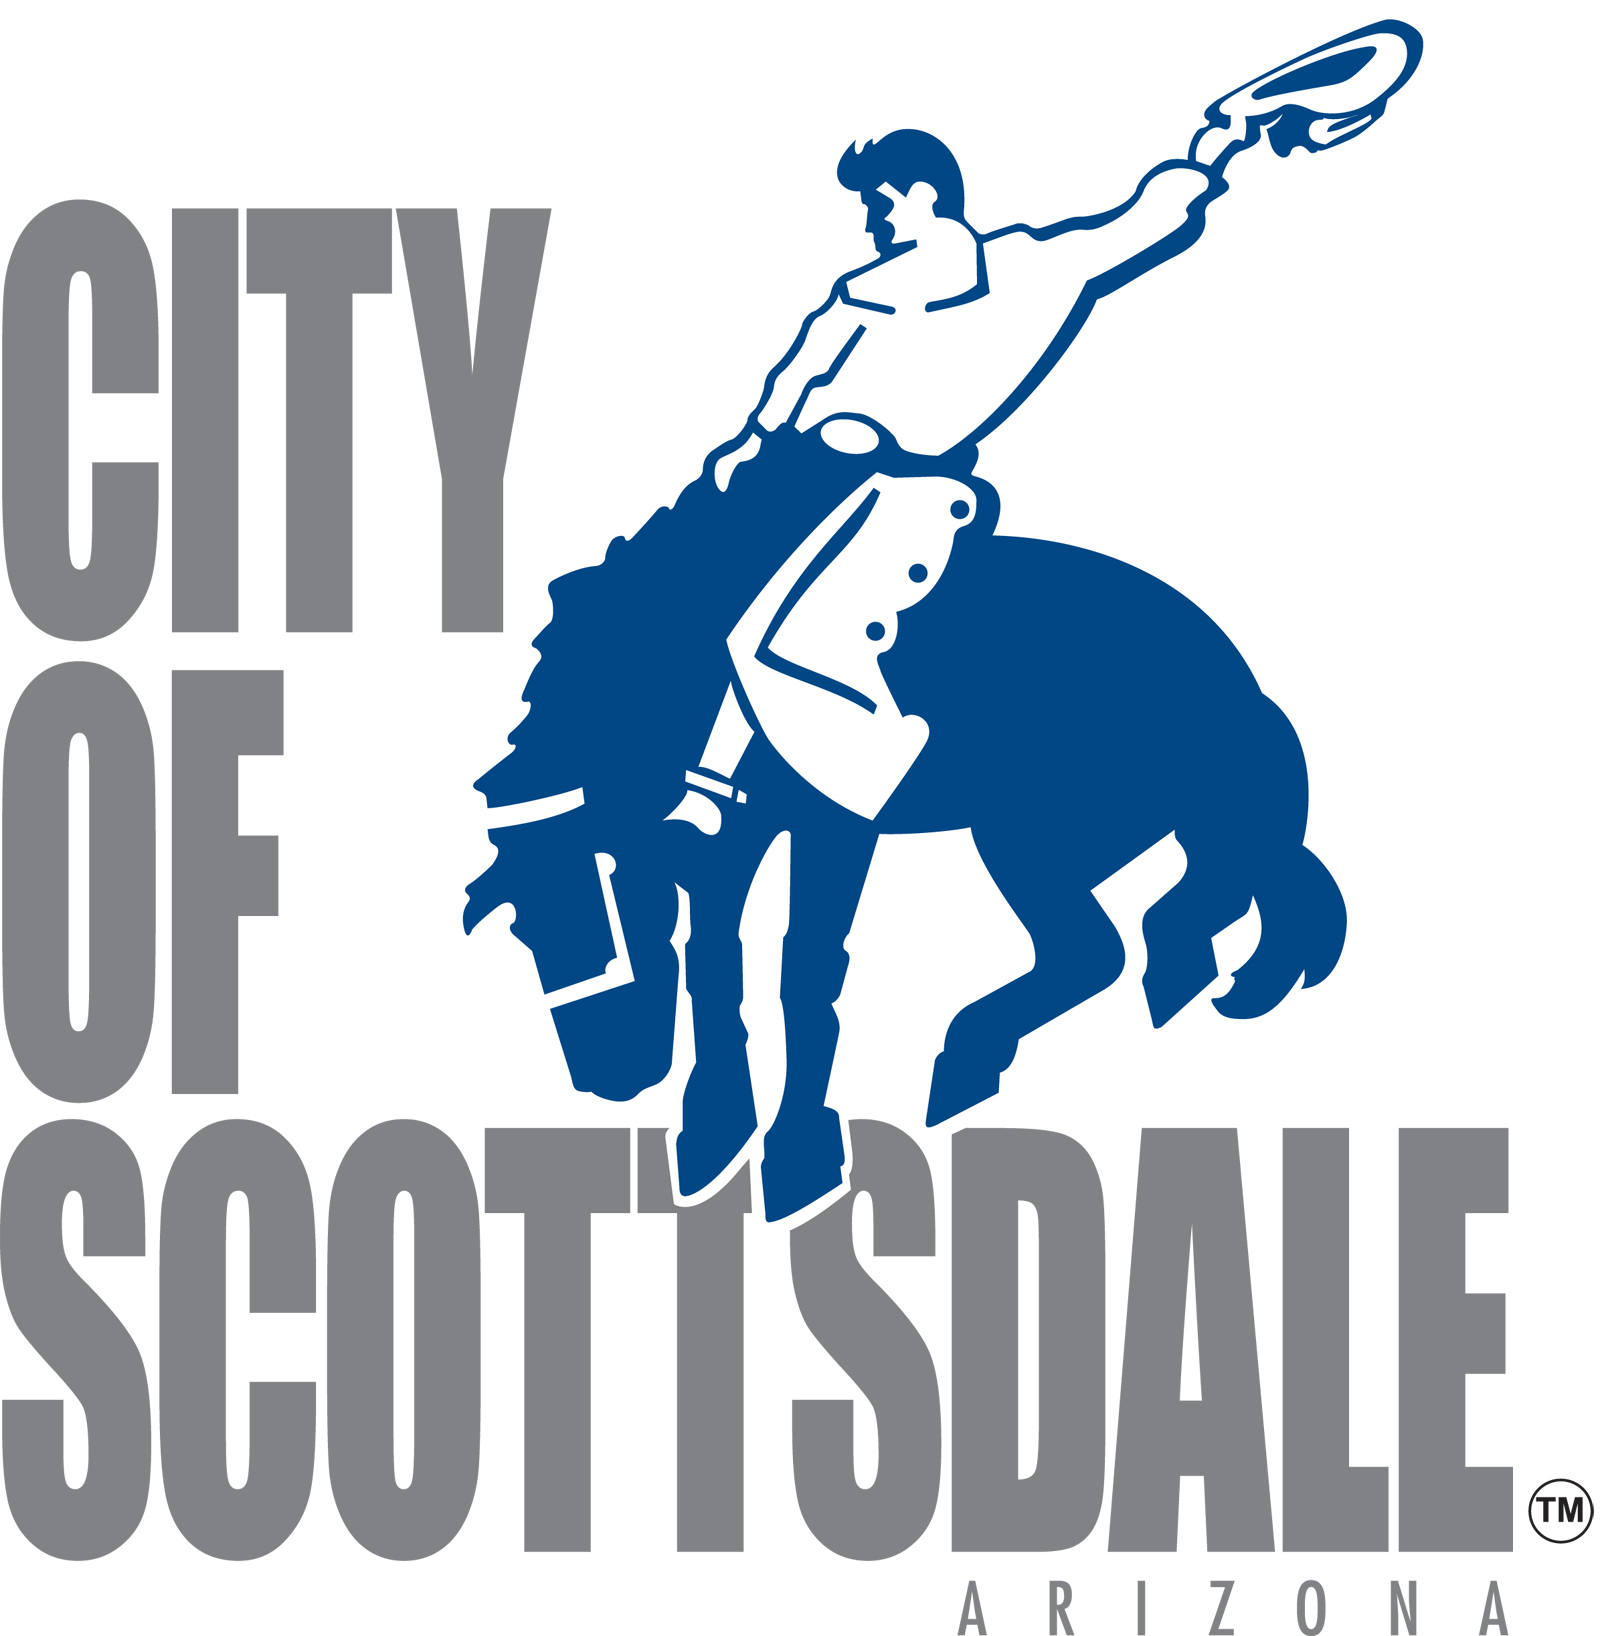 City of Scottsdale's Information Systems Department